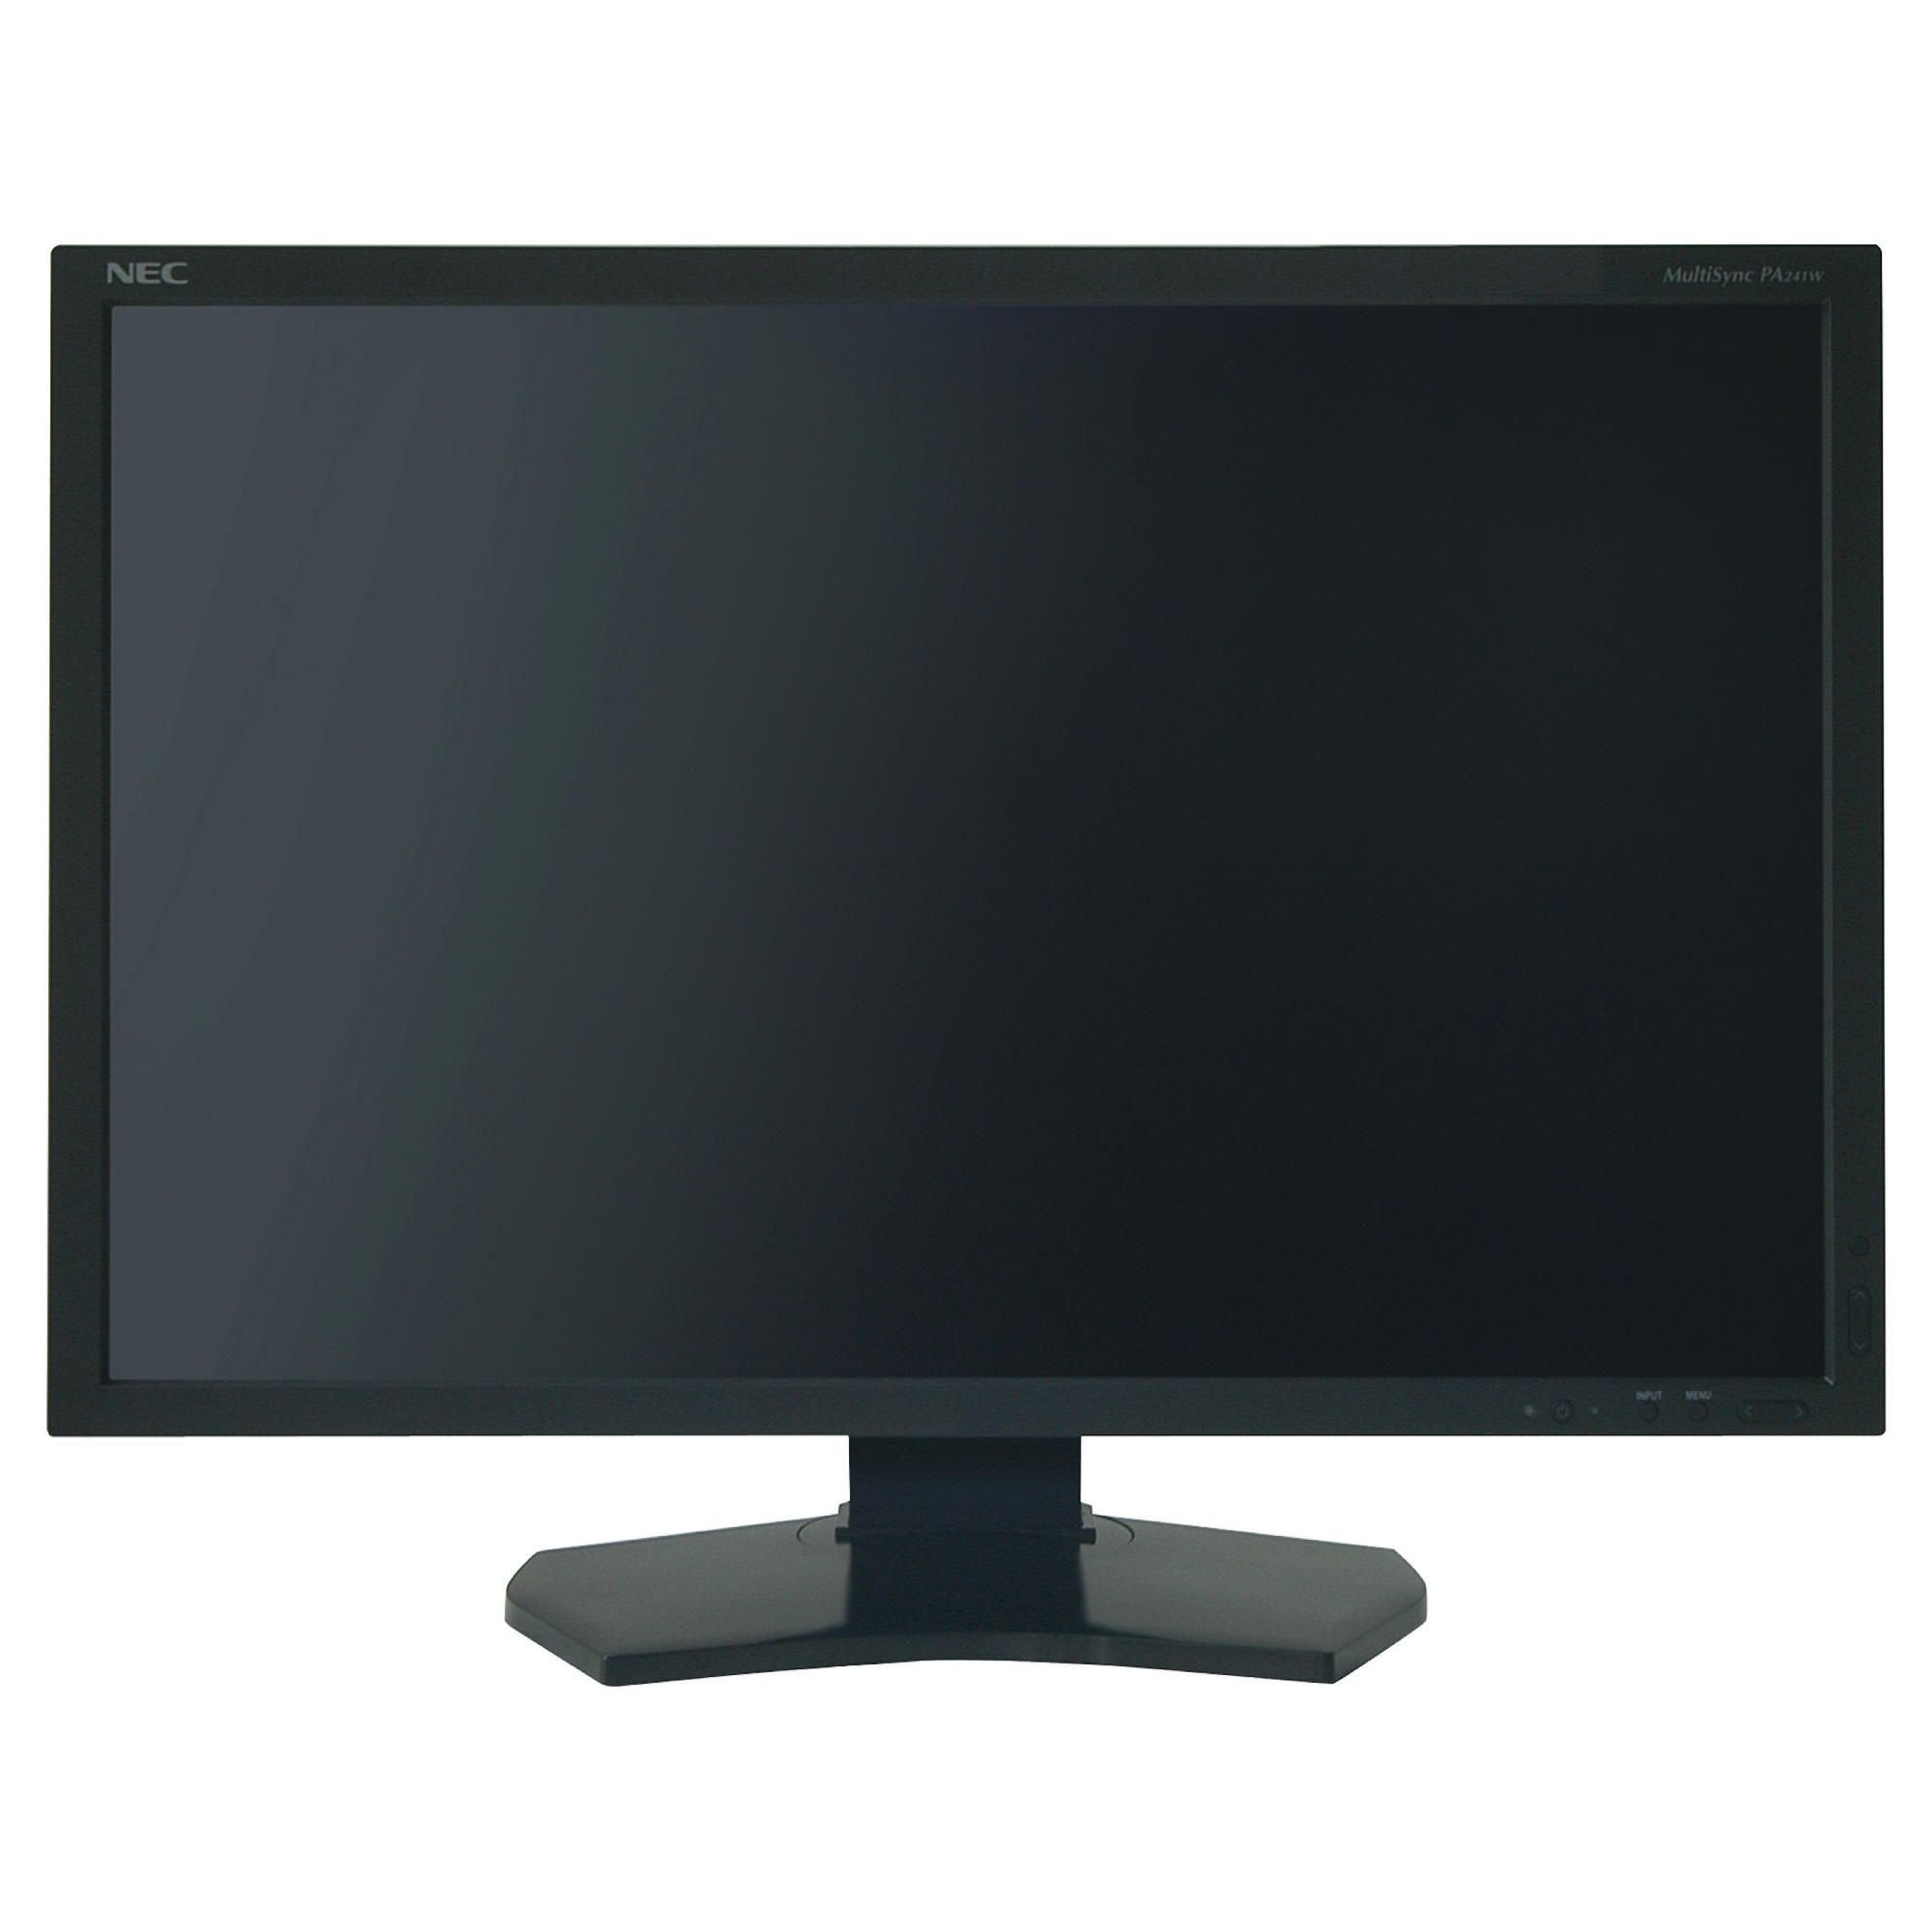 NEC PA301WB 30'' LCD Monitor Black at Tesco Direct